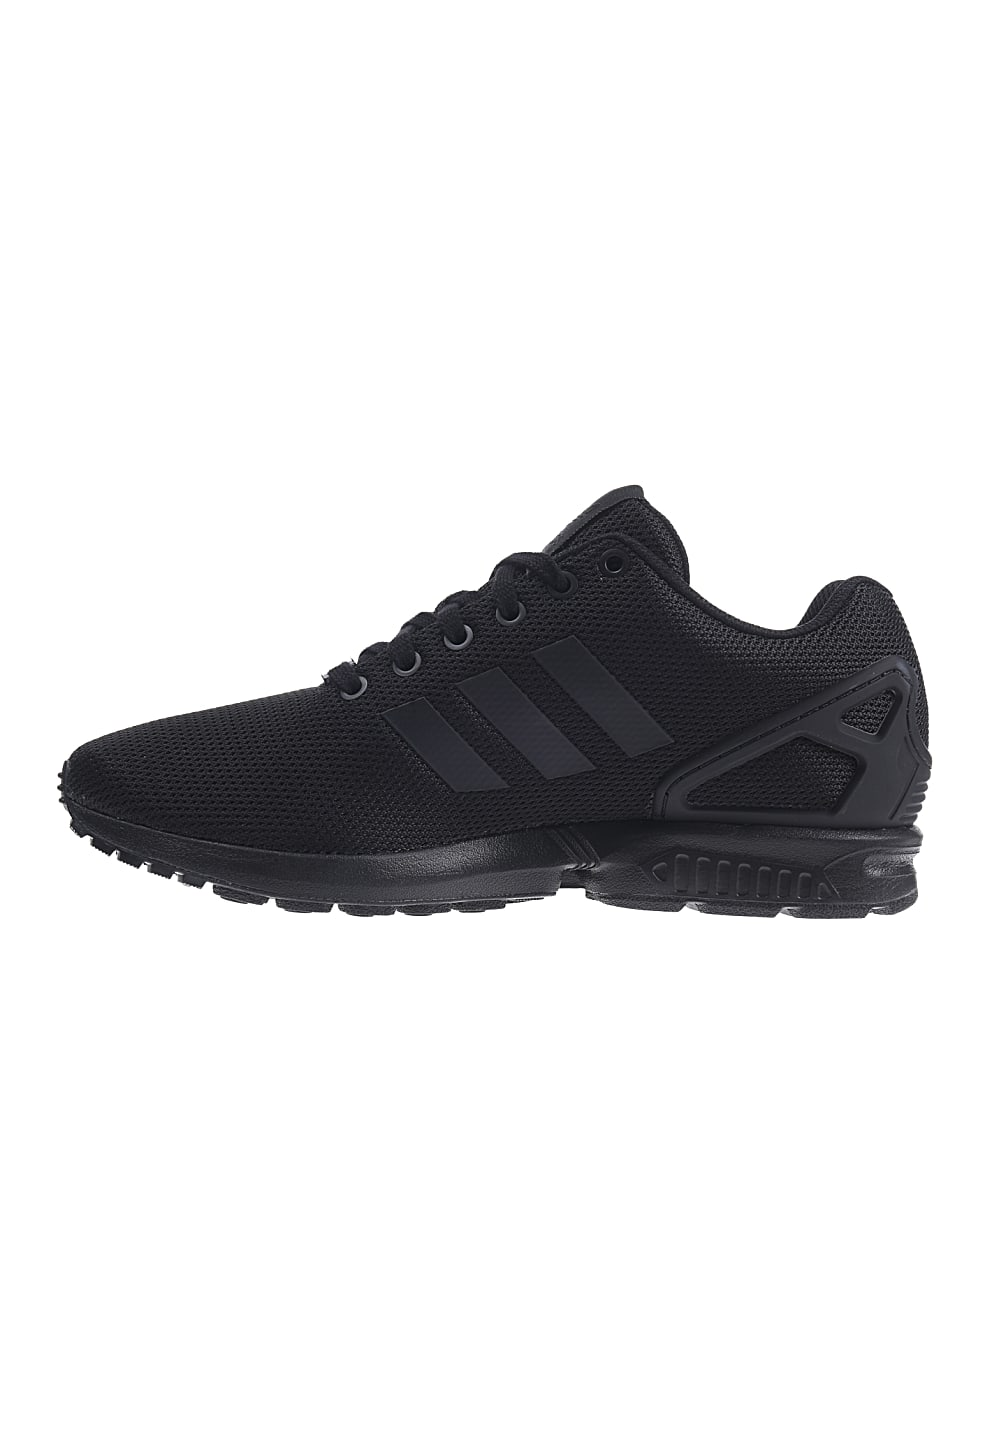 adidas originals zx flux sneakers damen schwarz weiß